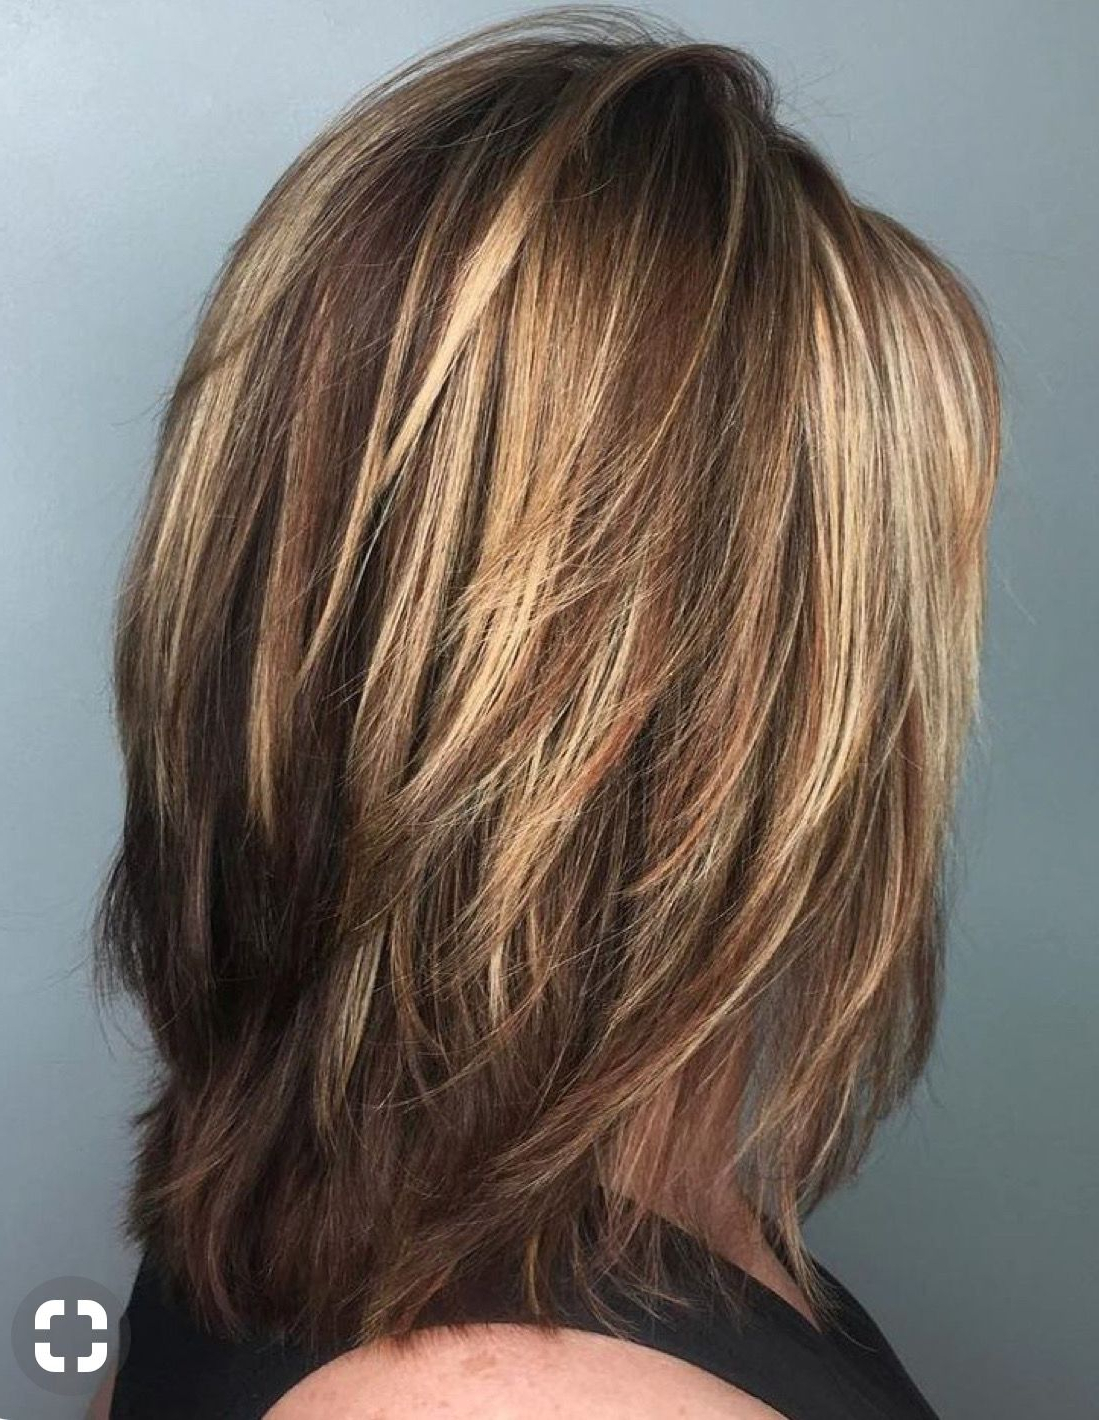 Pin On Medium Hair For 2017 Medium Haircuts With Feathered Ends (View 8 of 20)